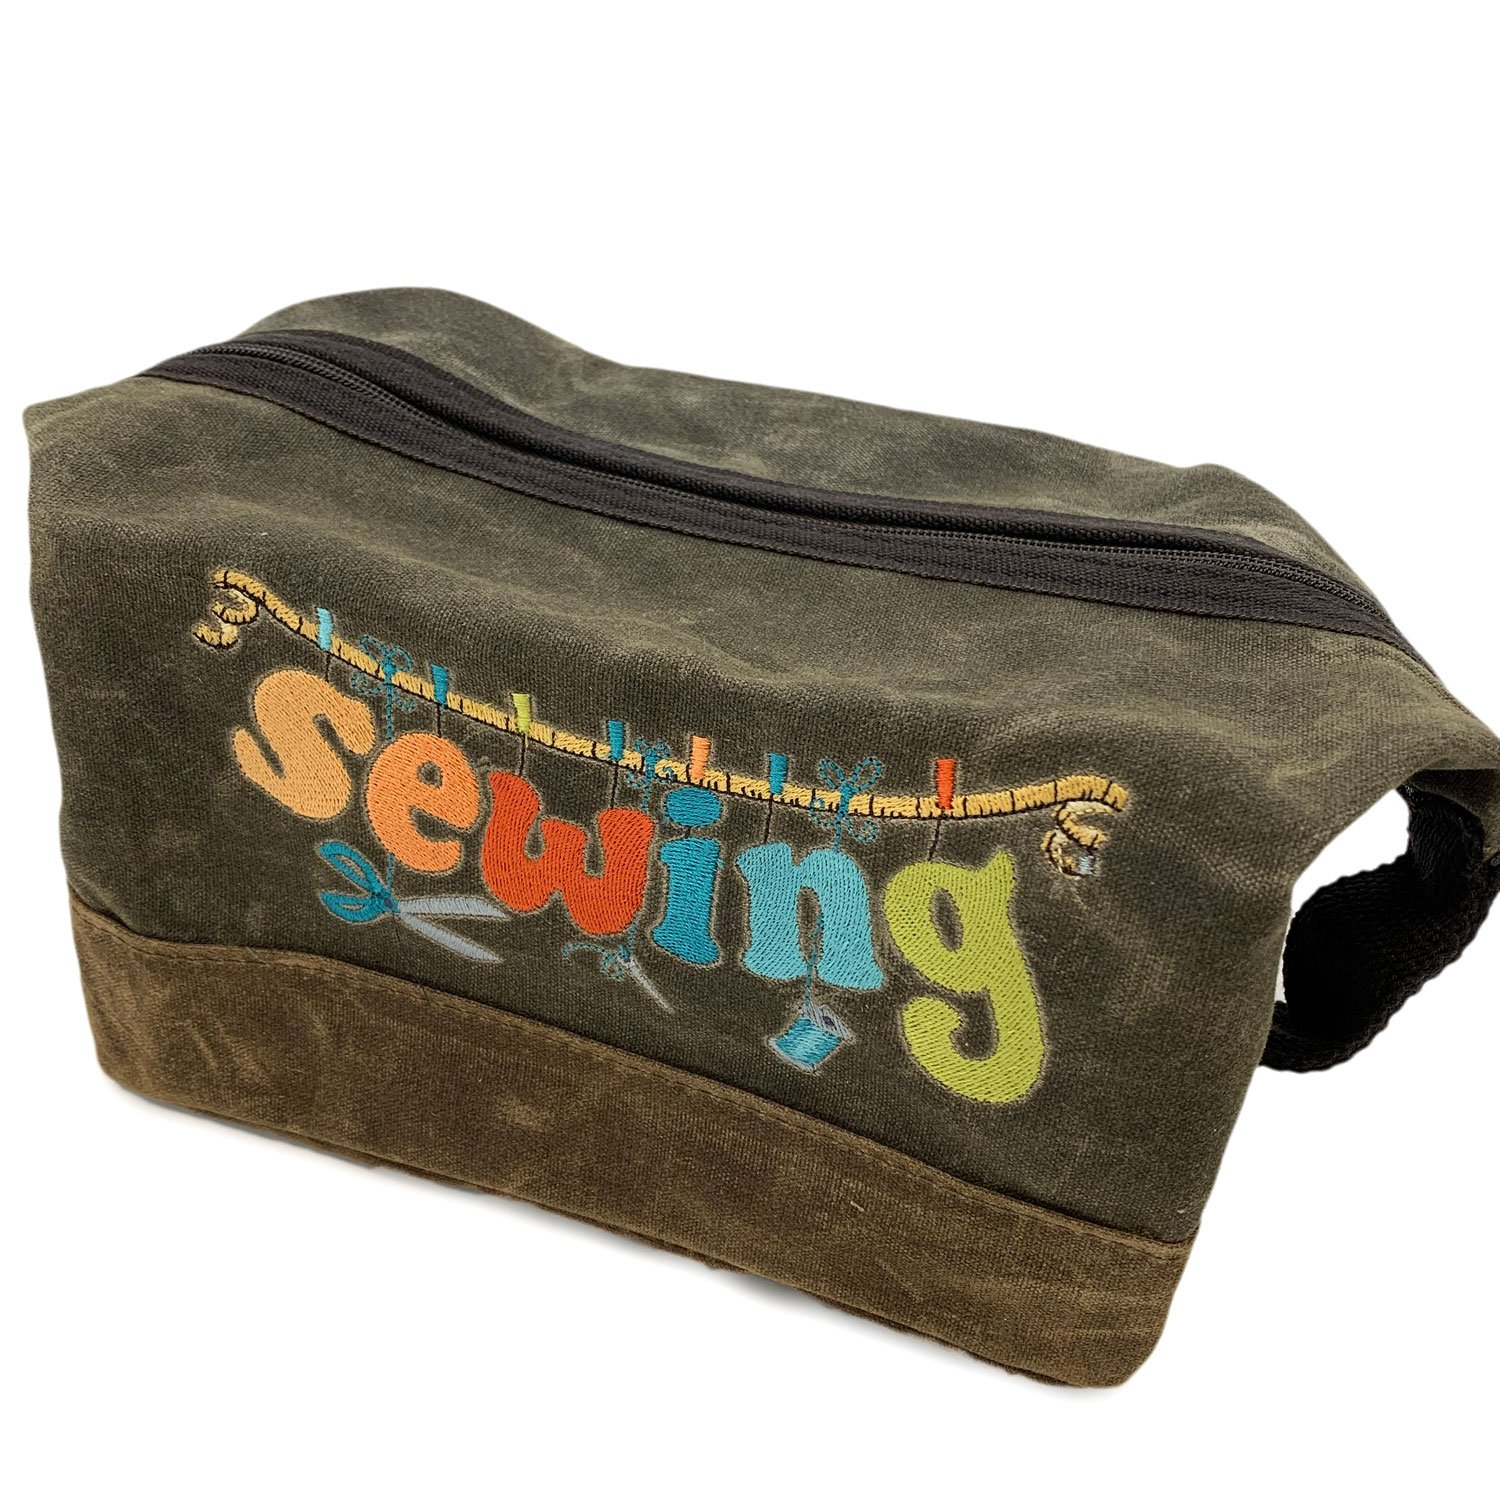 Embroidered Waxed Canvas Sewing Bag Olive